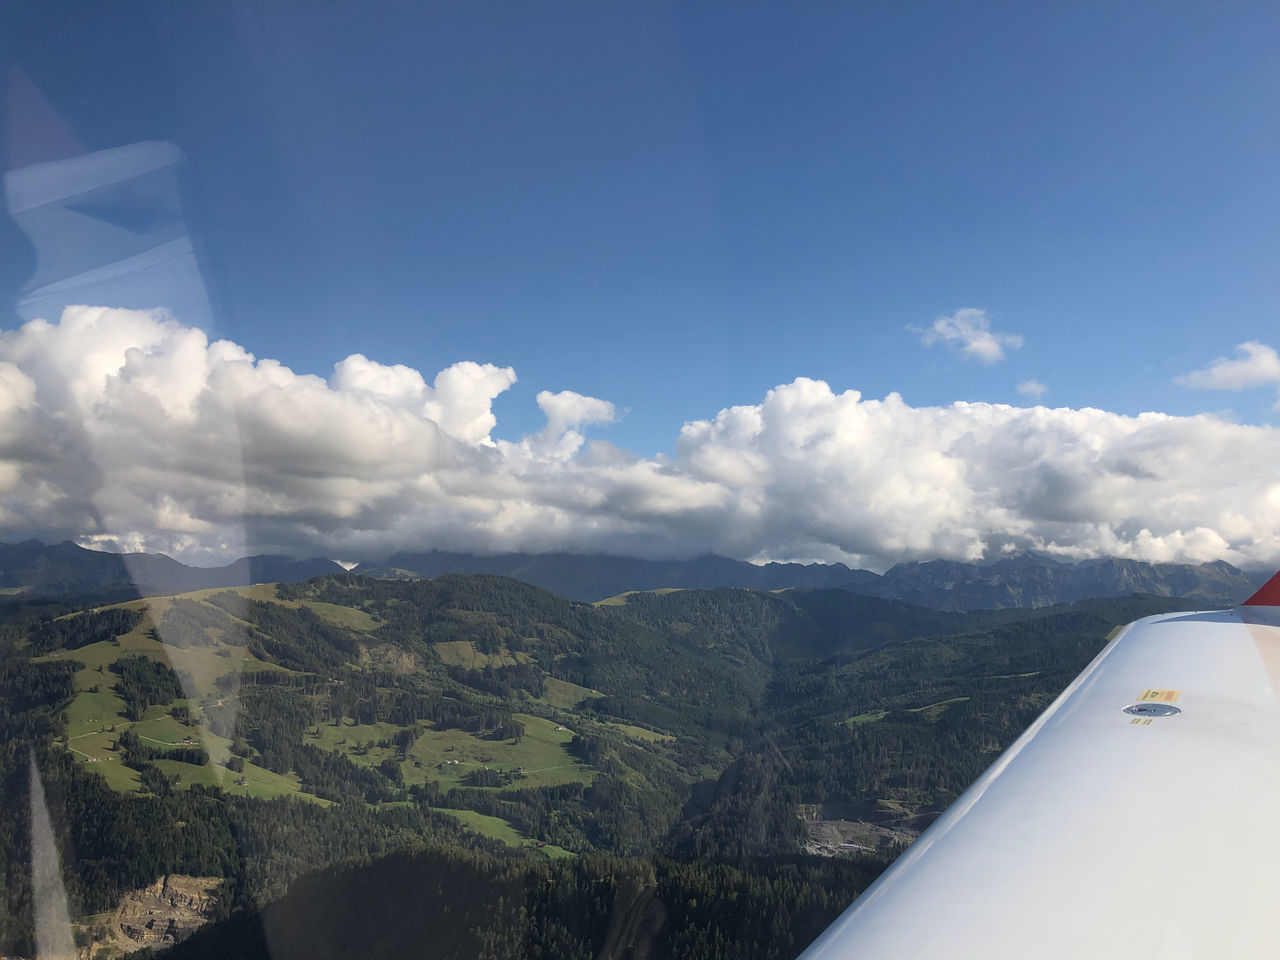 airplane, sky, cloud - sky, air vehicle, mode of transportation, transportation, flying, beauty in nature, travel, scenics - nature, nature, no people, environment, mountain, landscape, journey, aircraft wing, mid-air, aerial view, day, outdoors